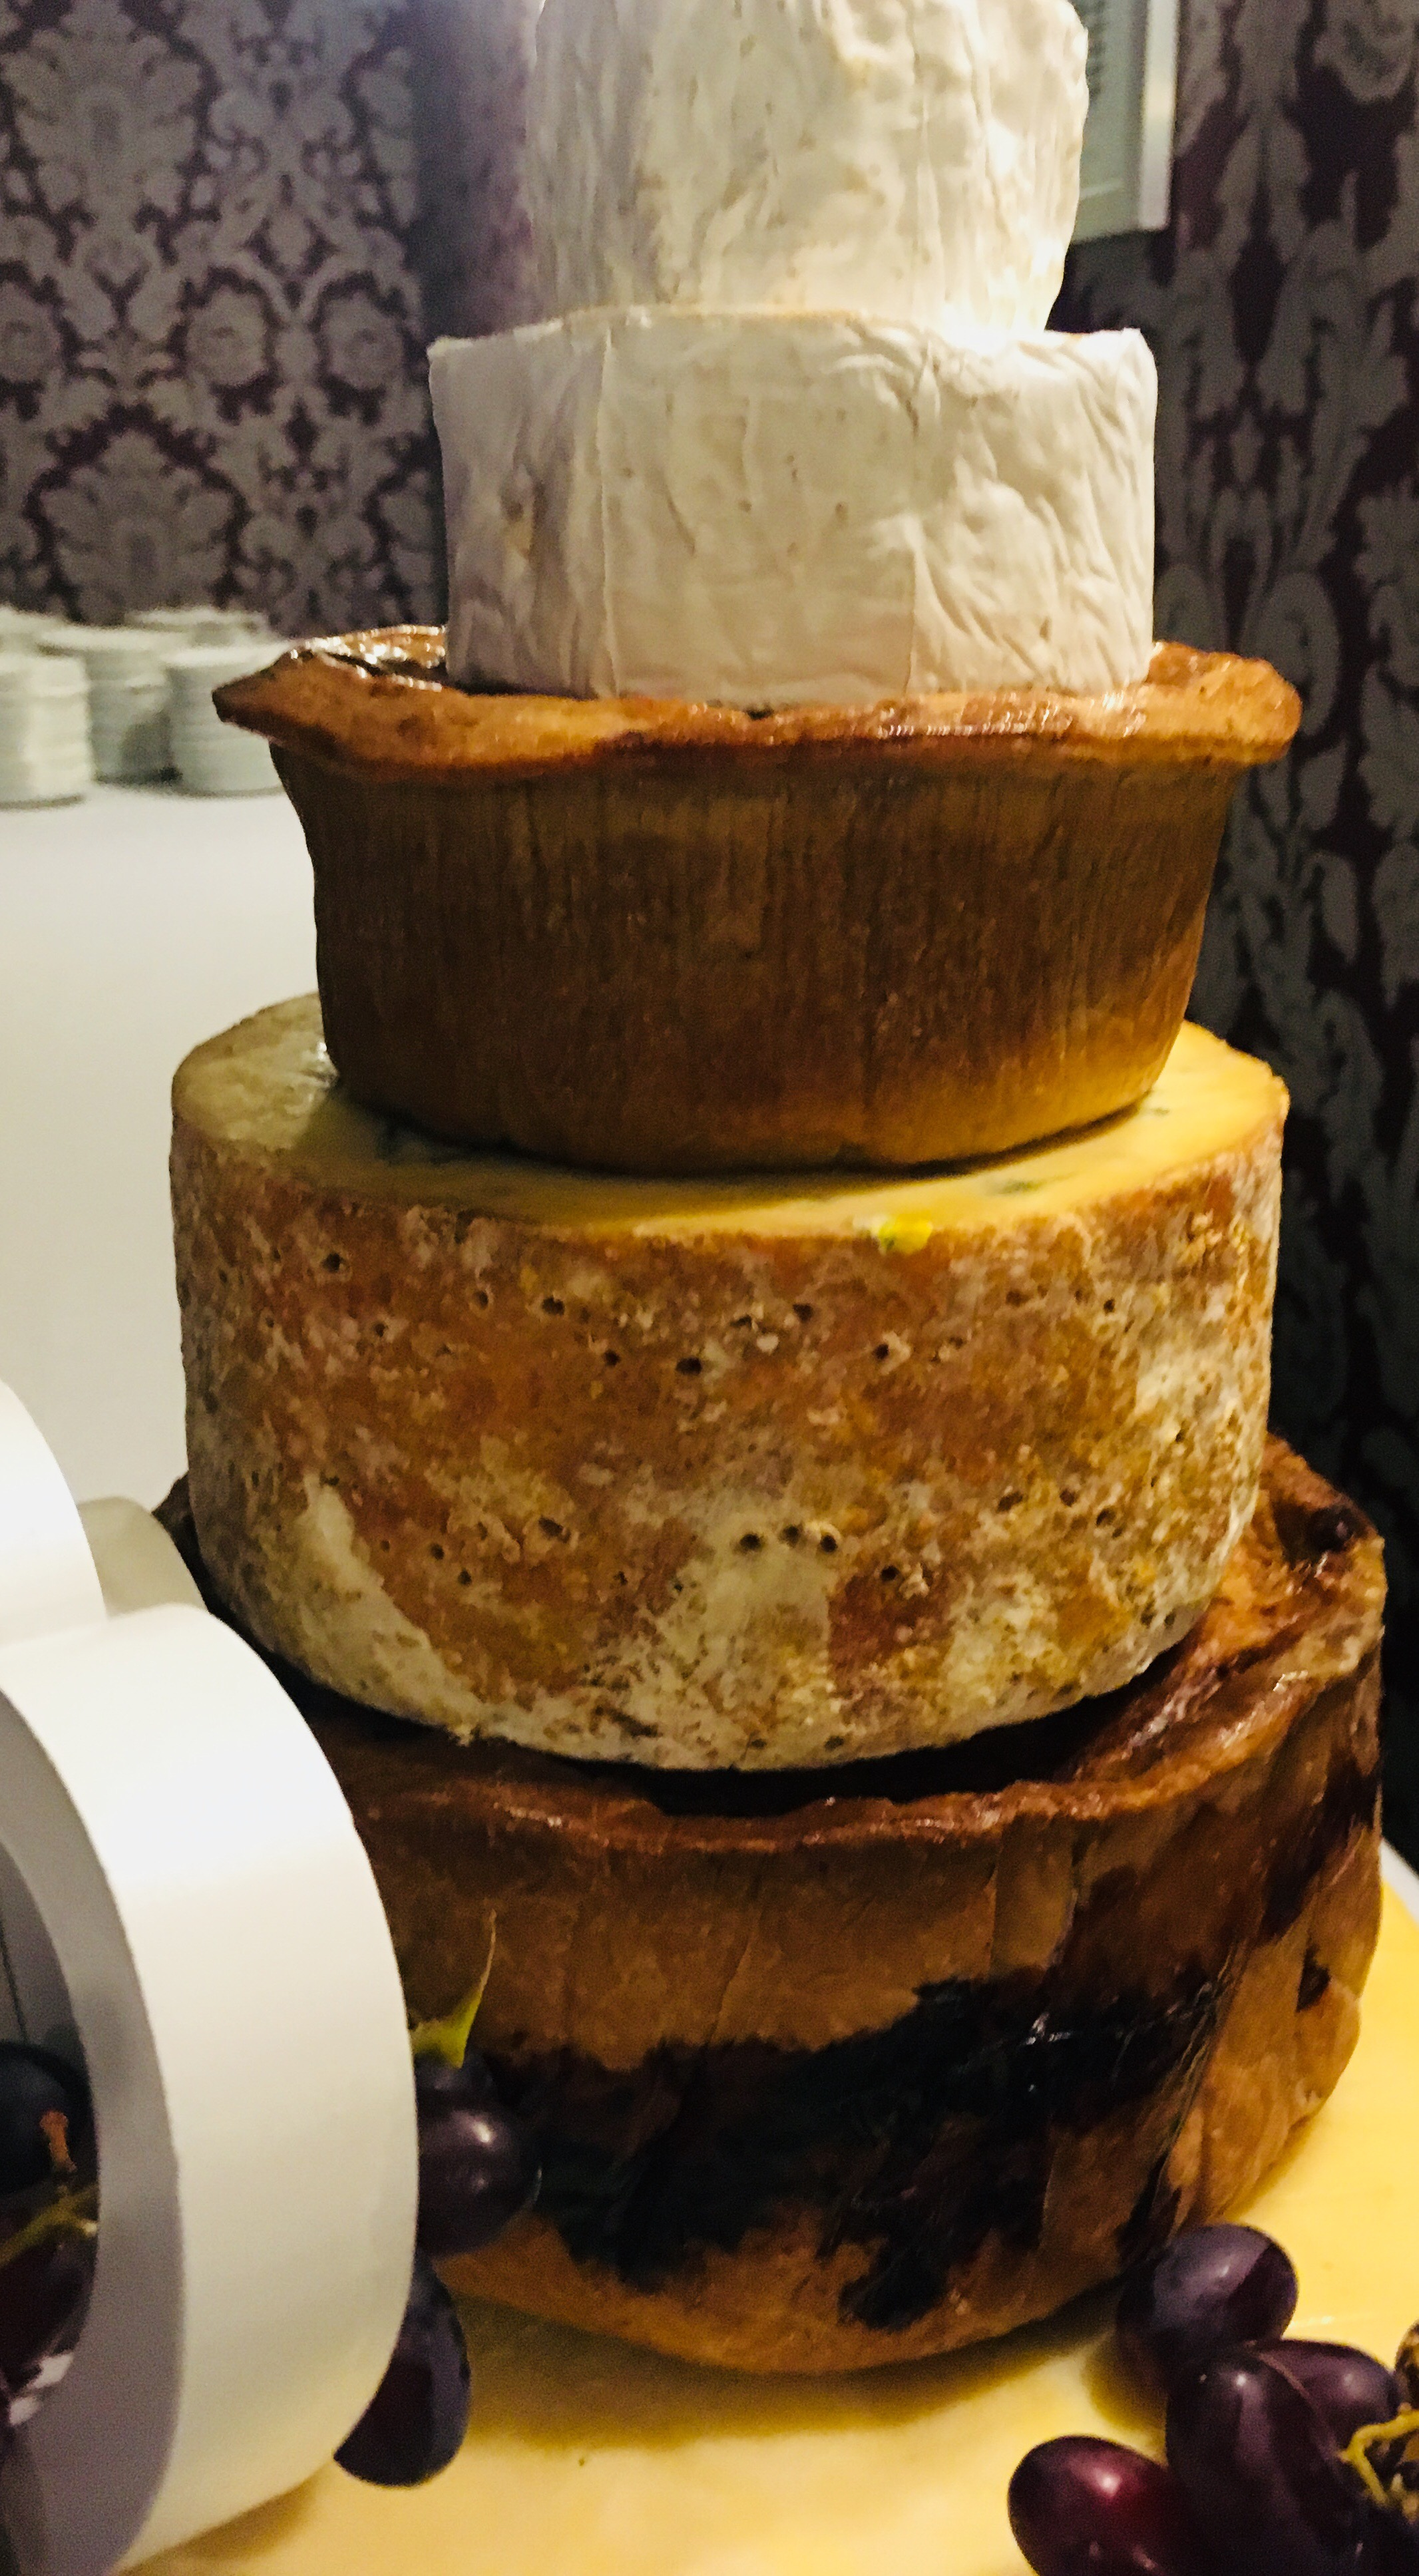 cheese wedding cakes north west cheese and pork pie wedding cake the west country cheese 12614